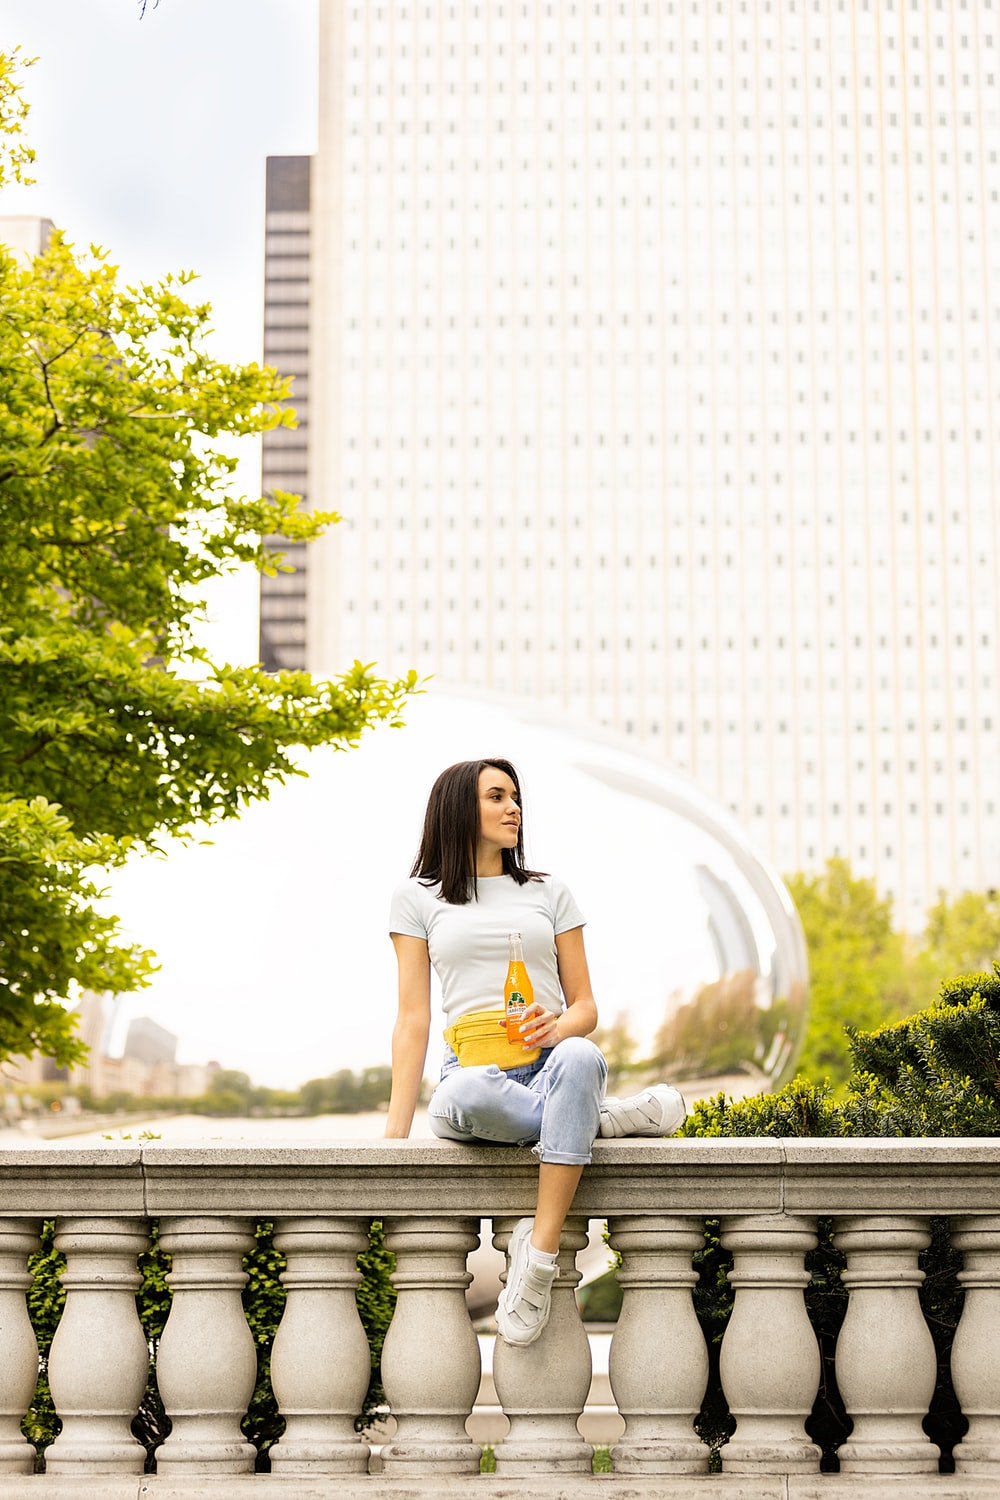 woman in white shirt sitting on gray wooden bench during daytime